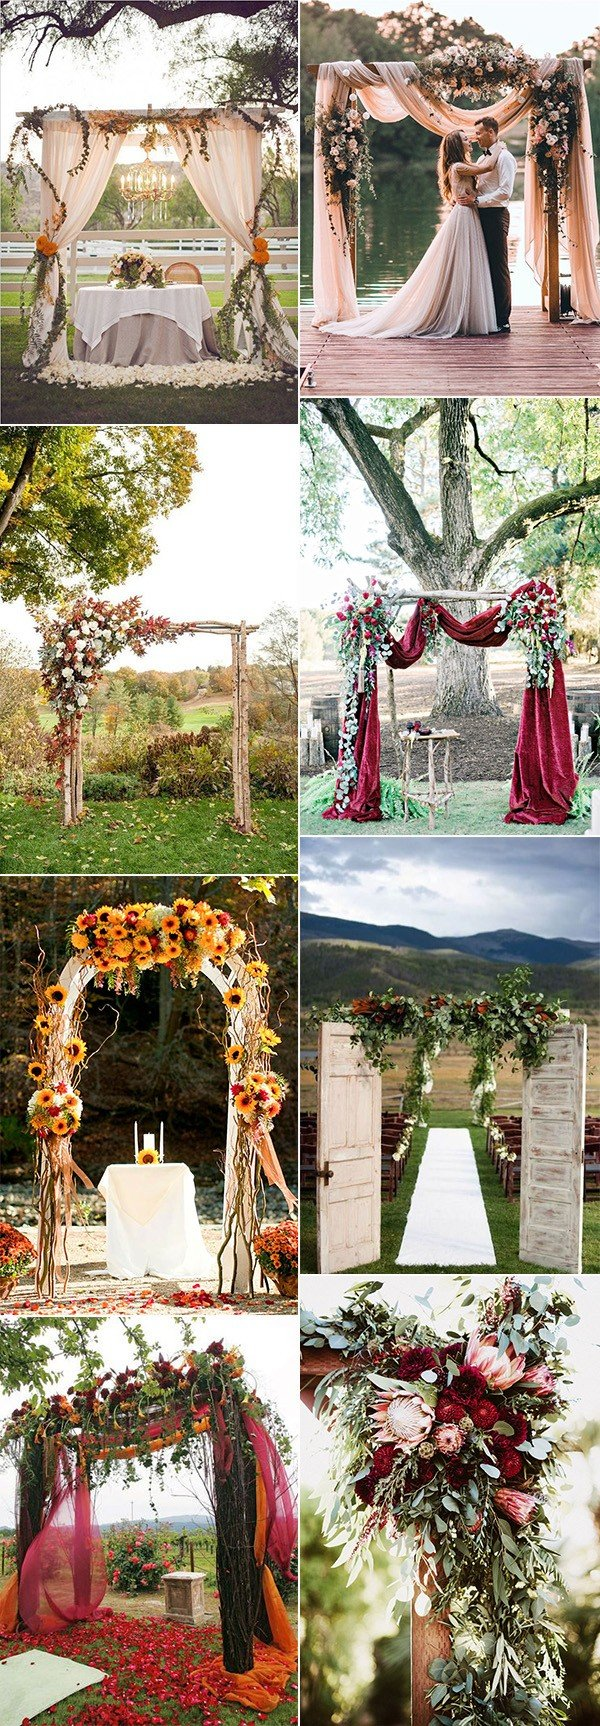 70+ Amazing Fall Wedding Ideas for 2020 - Page 2 of 4 - Oh